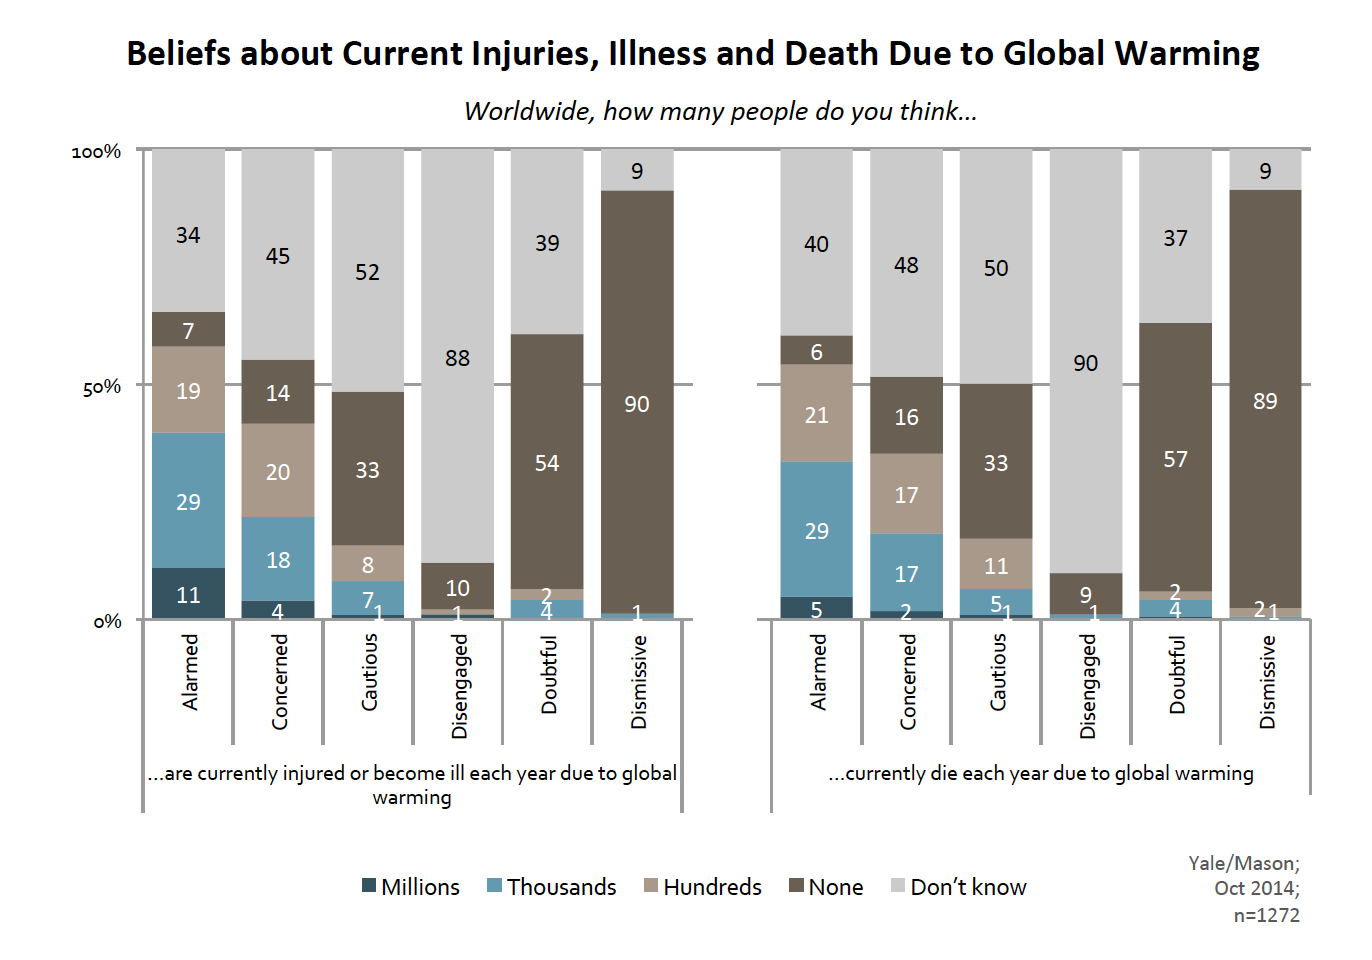 Image for Beliefs About Current Health Impacts of Global Warming